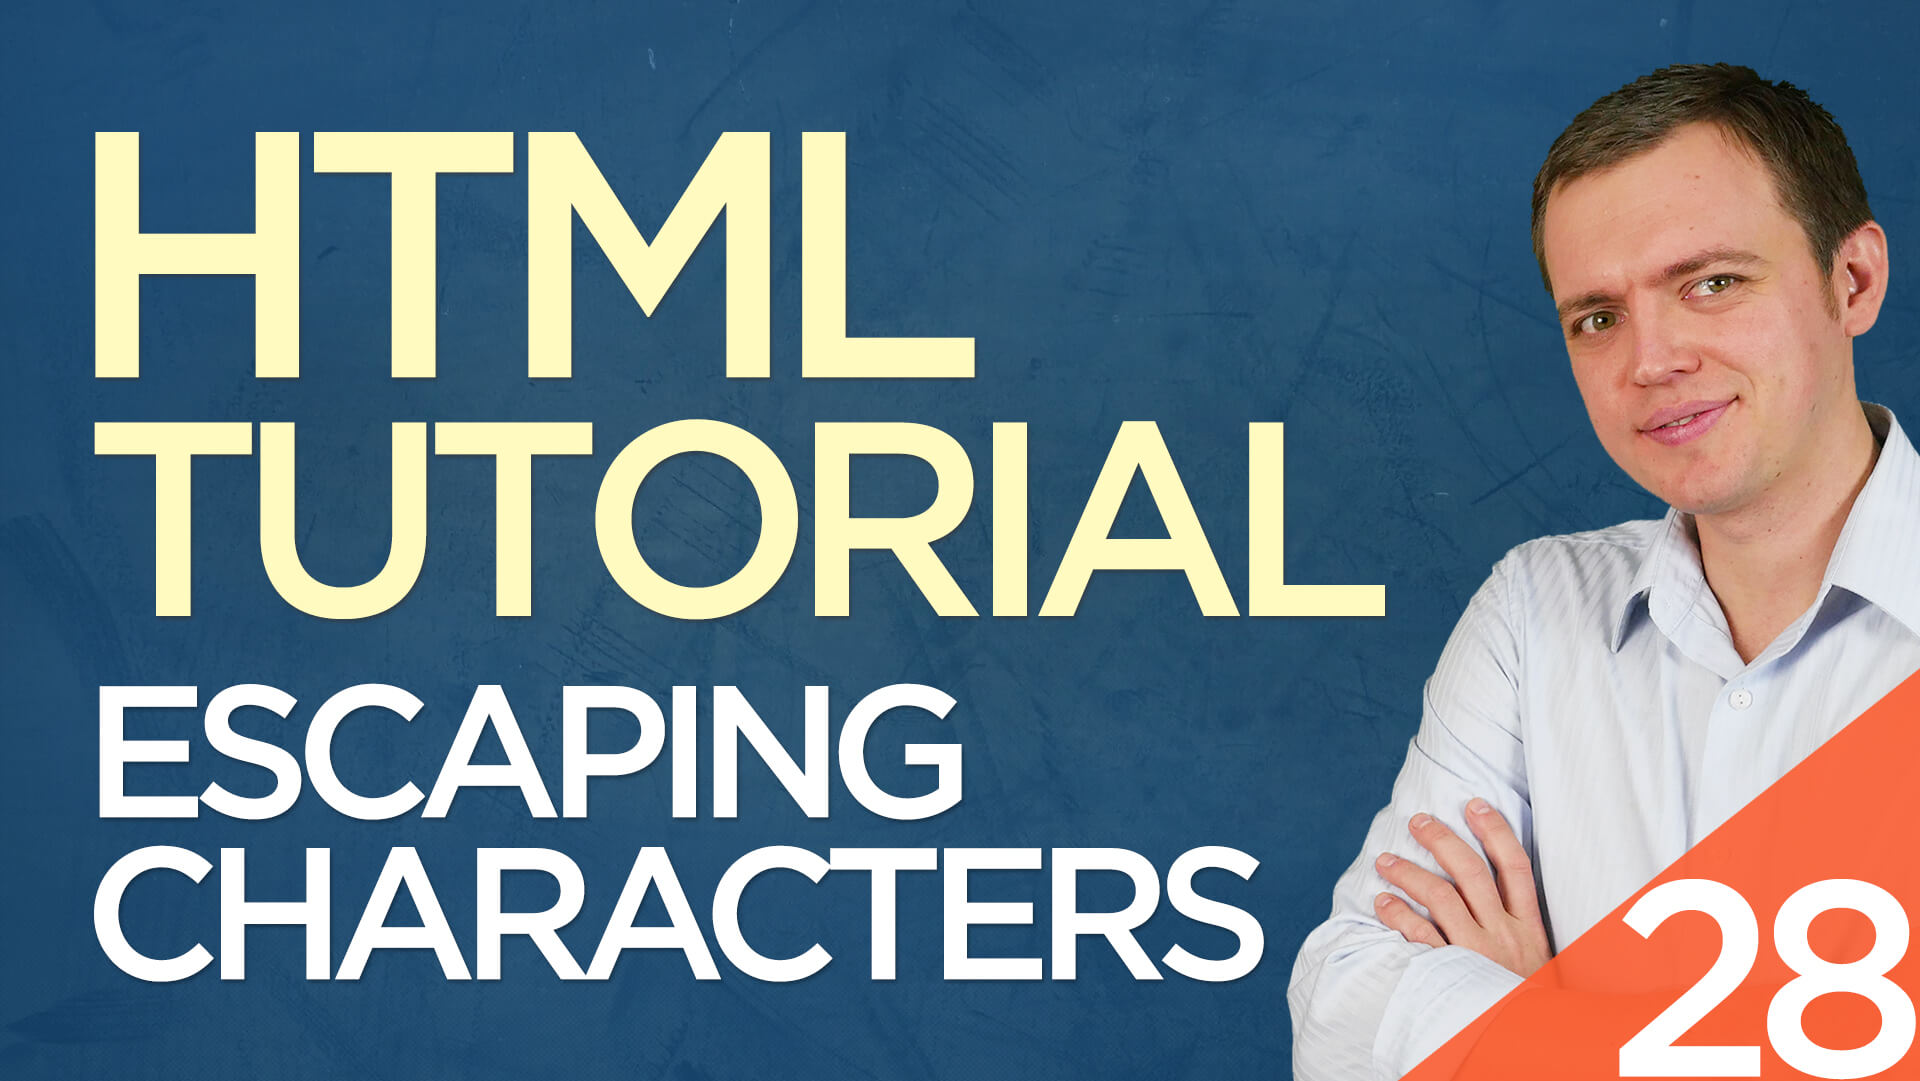 HTML Tutorial for Beginners: 28 Escaping Characters